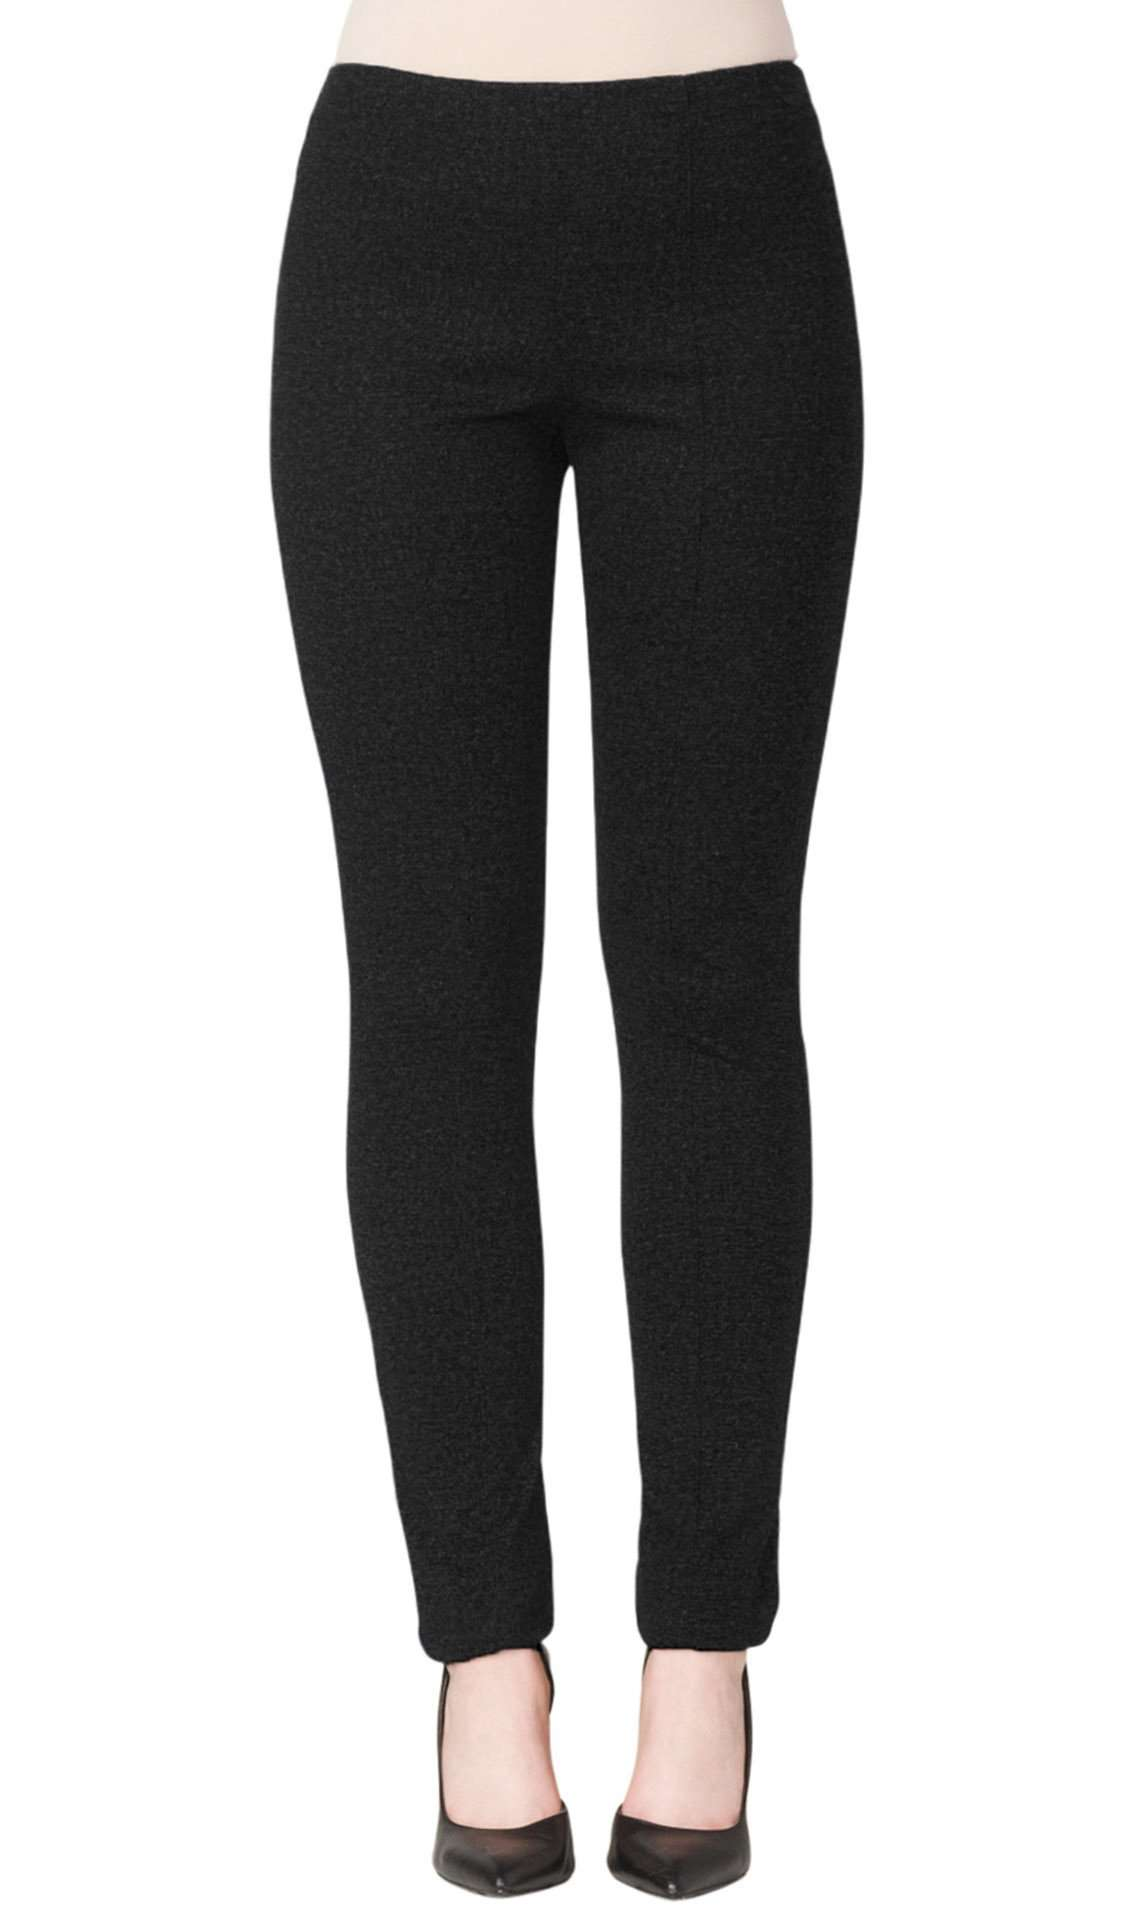 Women's Black Slim Leg Pants - Yvonne Marie